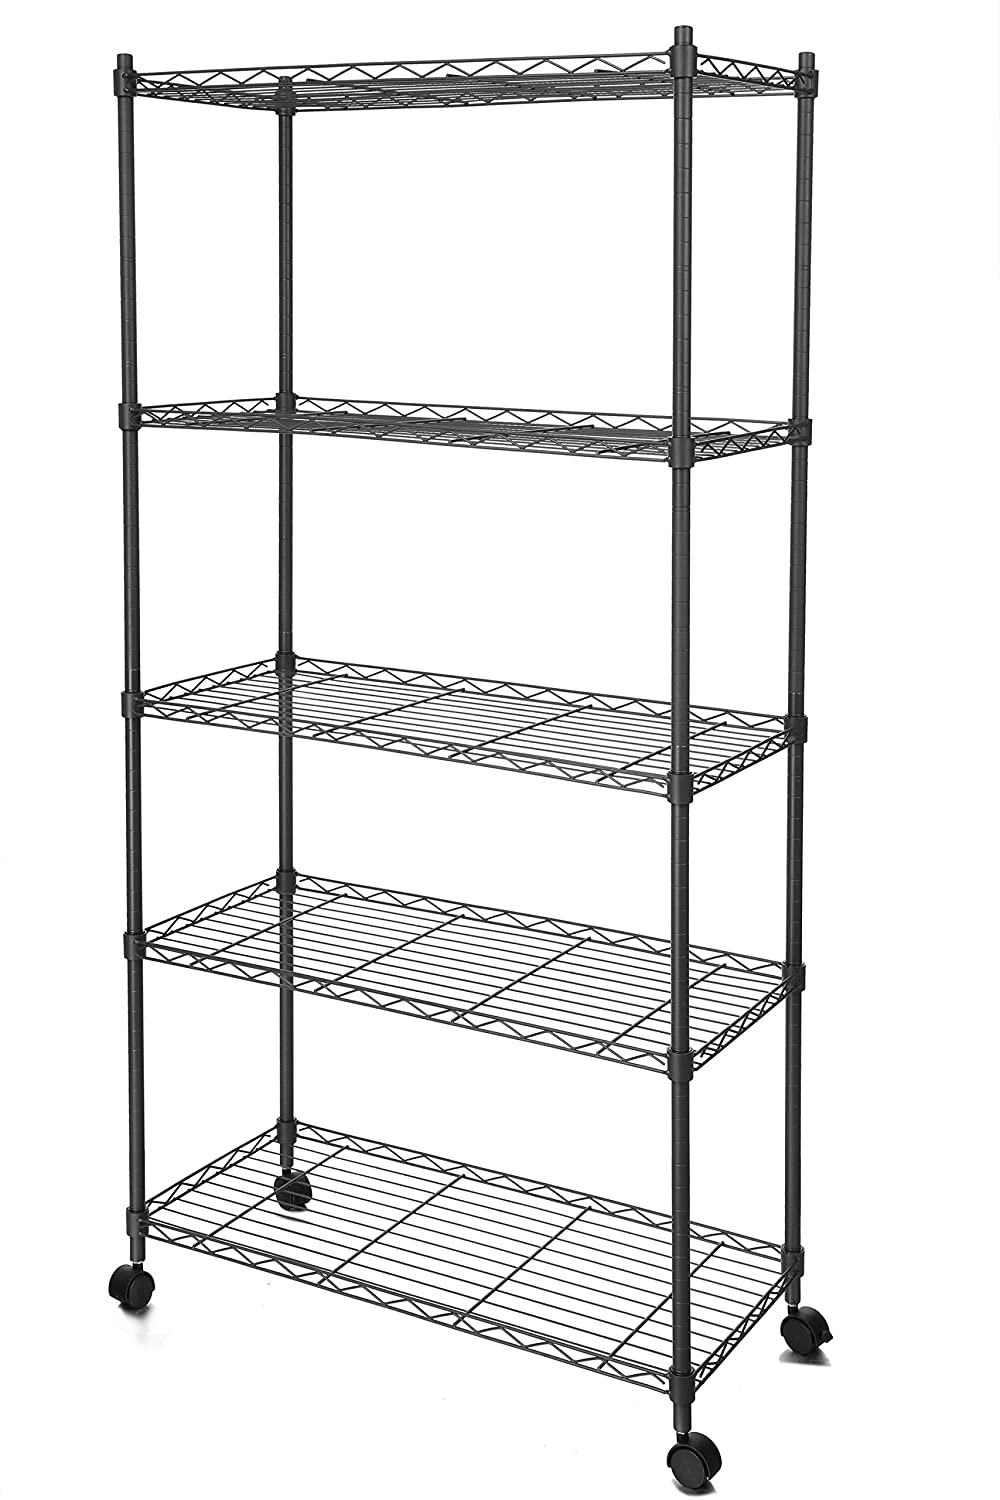 Amazon.com: Homdox 5-Shelf Shelving Unit on Wheels wire shelves ...